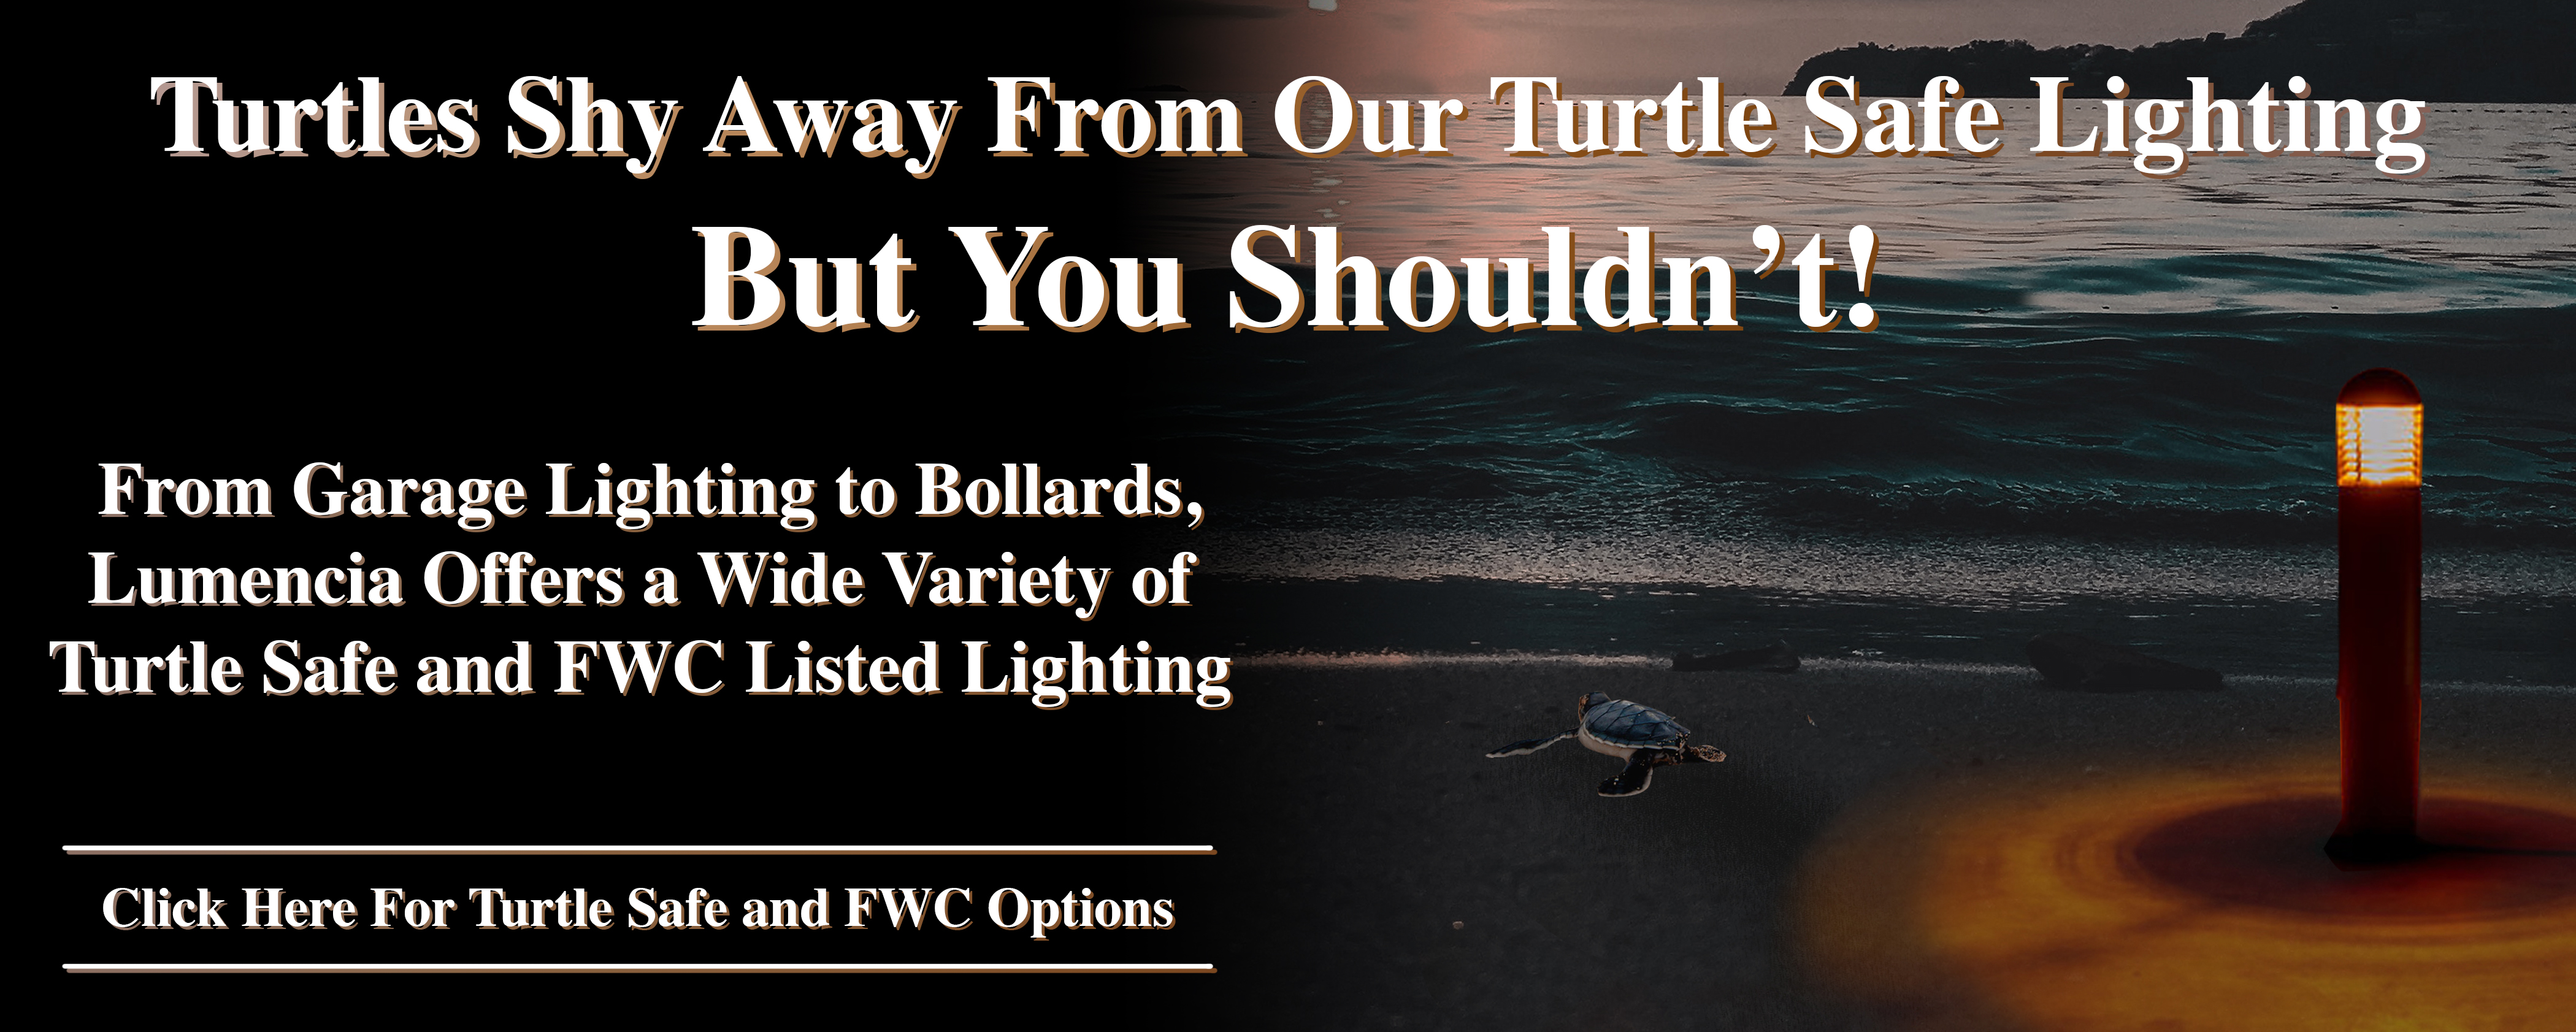 Turtles Shy Away From Our Turtle Safe Lighting